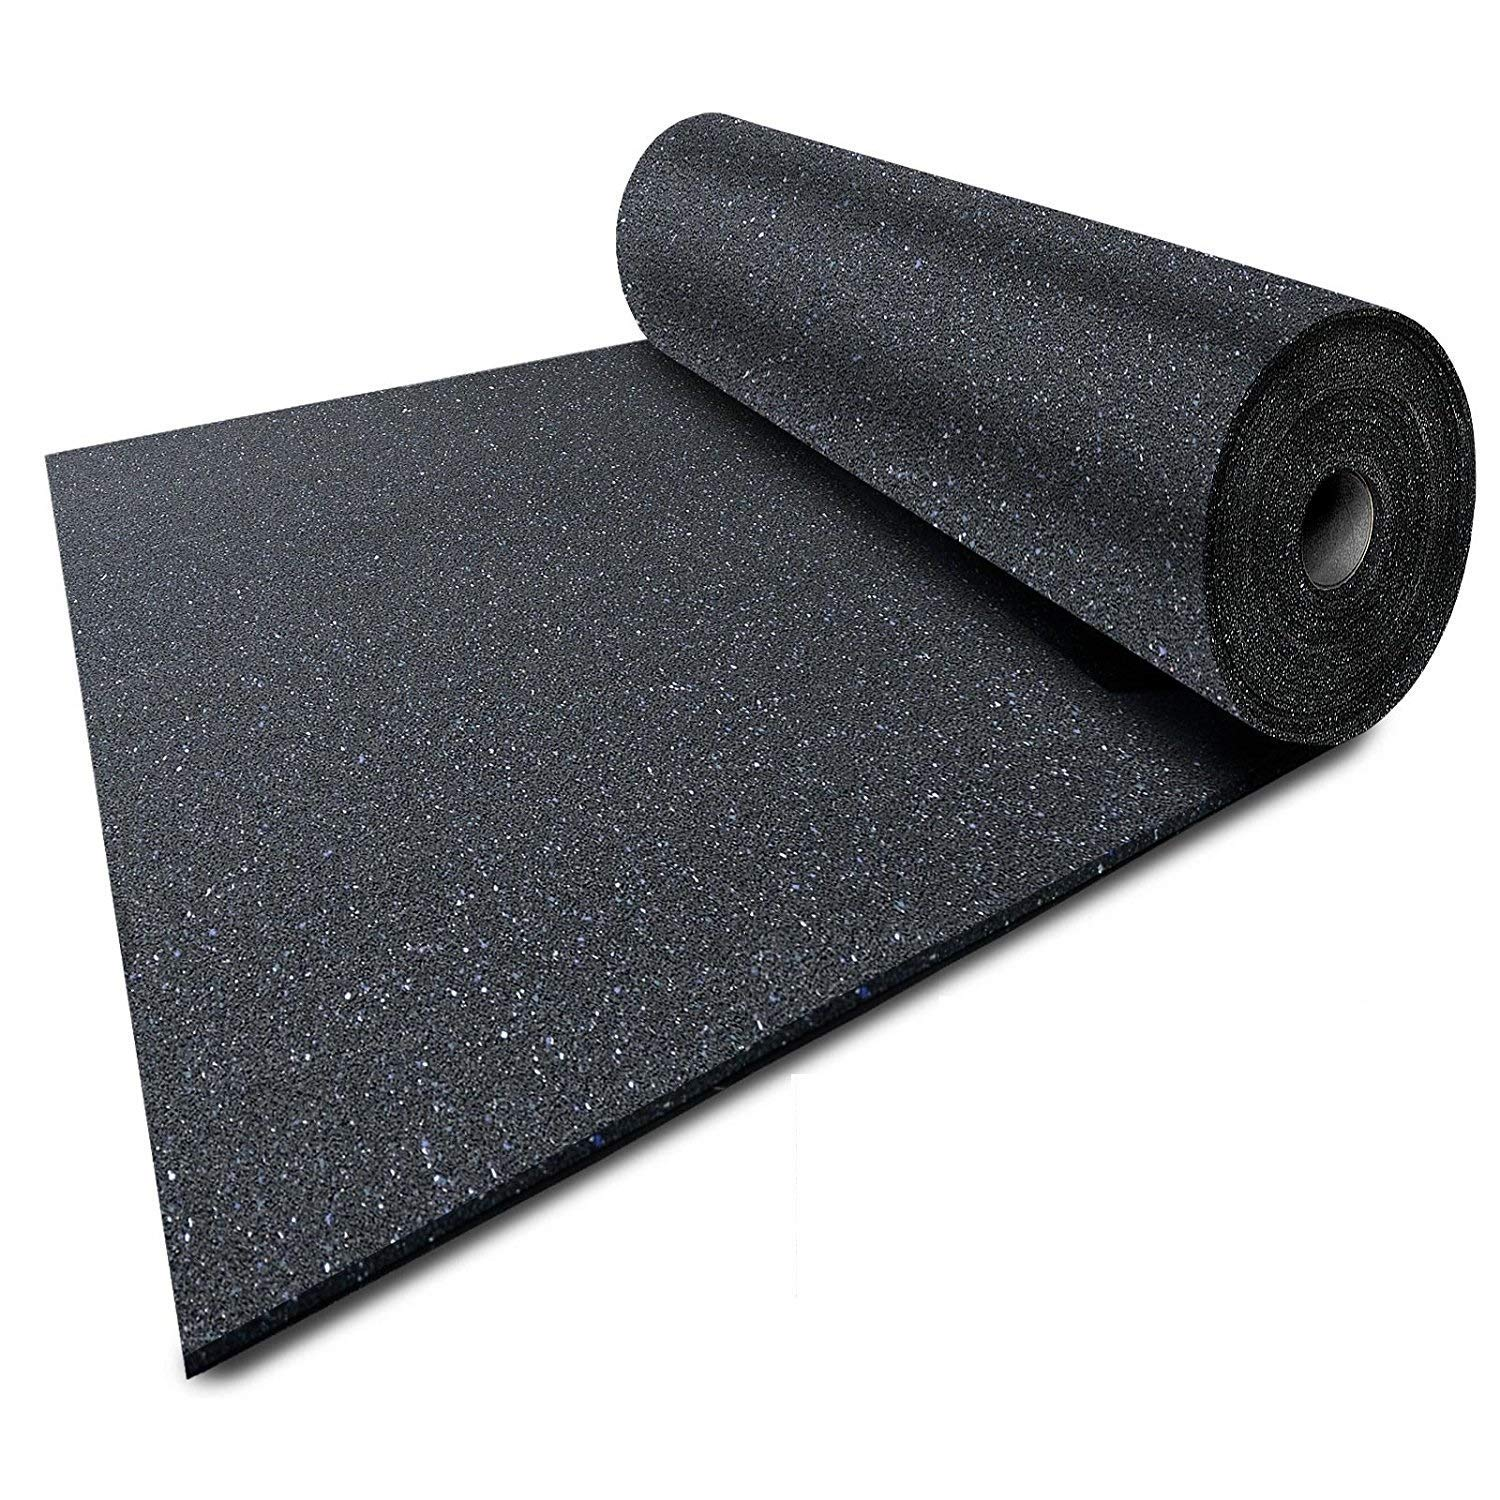 Ergocell Recycled Rubber Floor Mat – Shock Absorbent Gym Mat Flooring & Horse Stall Mat | Three Thicknesses, Multiple Sizes | 3/8'' - 2' x 2' by Ergocell (Image #3)